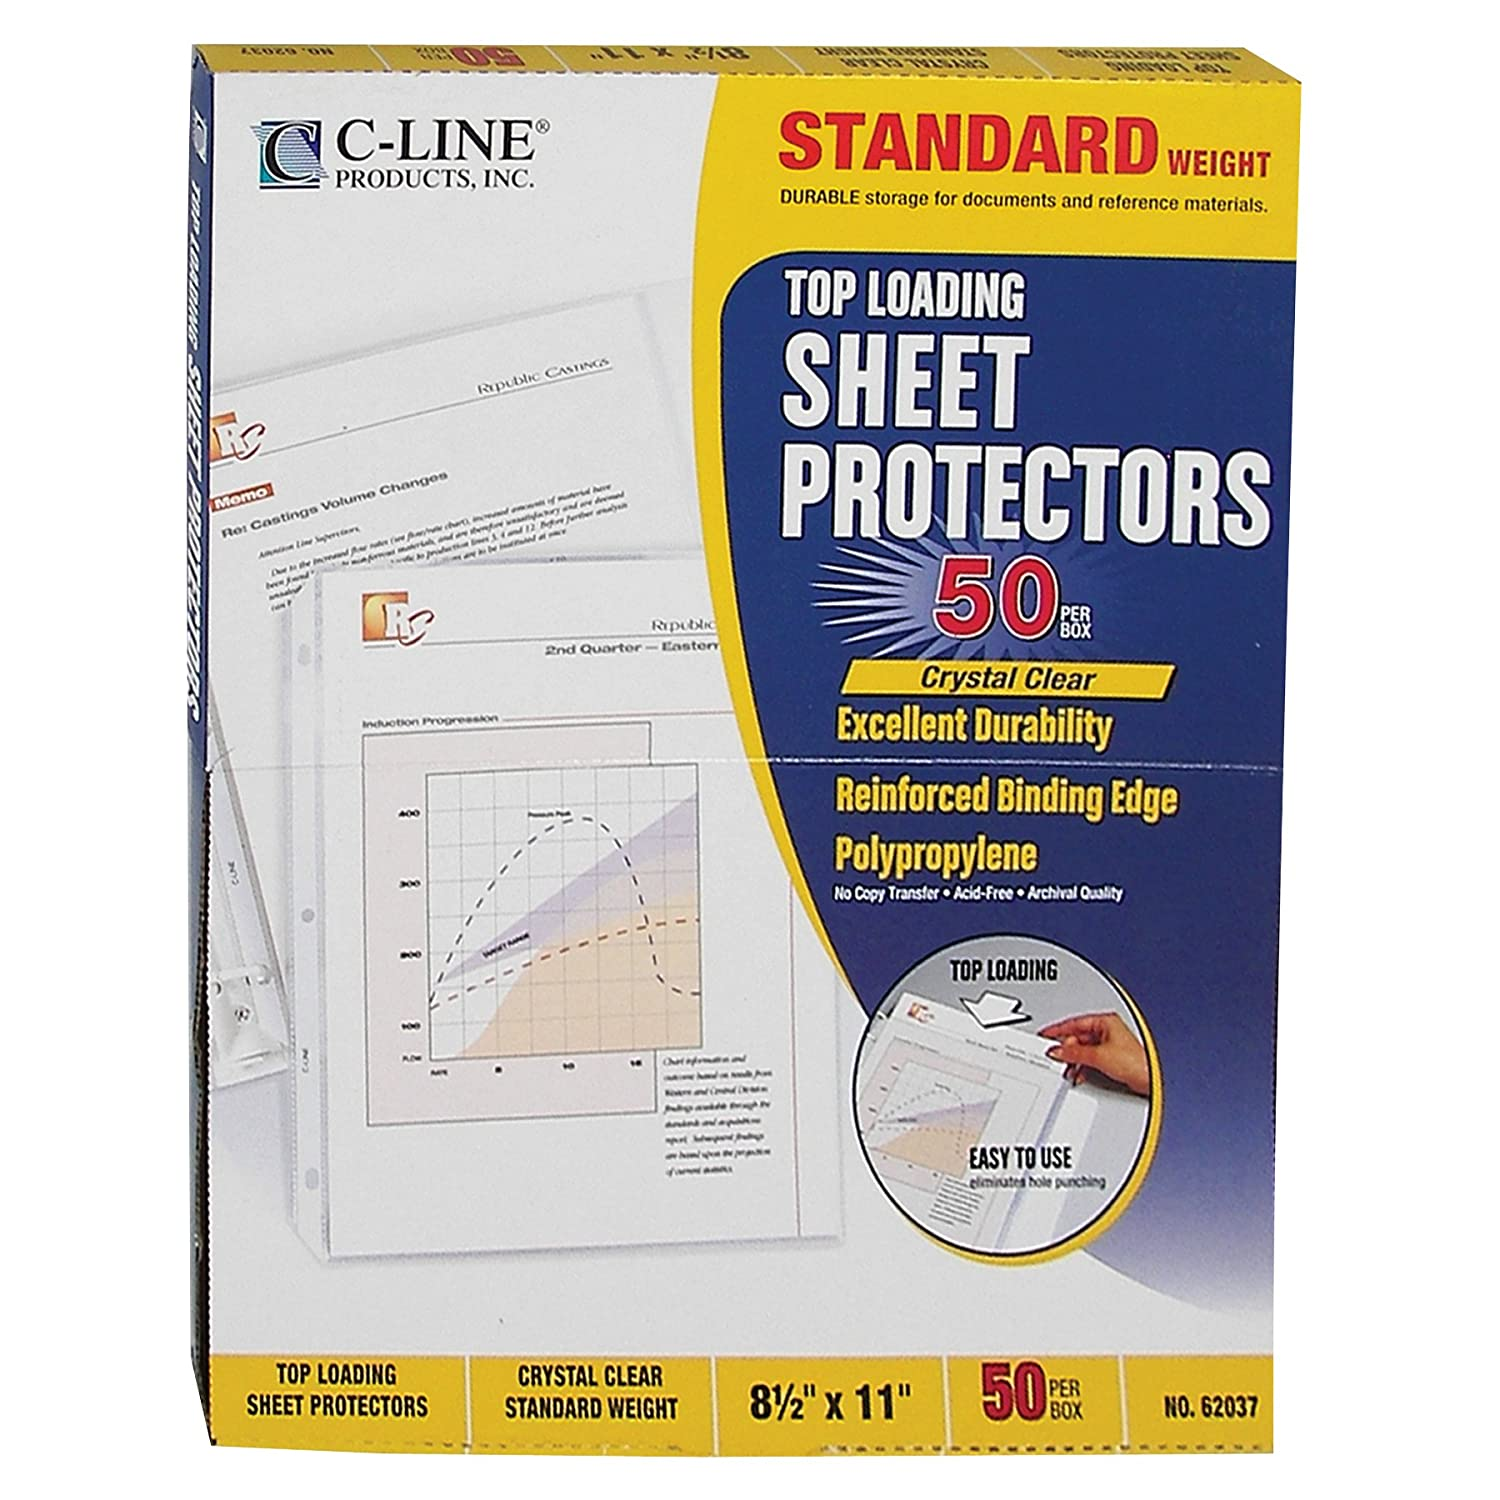 C-Line Top Loading Sheet Protectors, Standard Weight Polypropylene, for 8.5 x 11-Inch Sheets, 25-Pack, 05047 C-Line Products Inc.